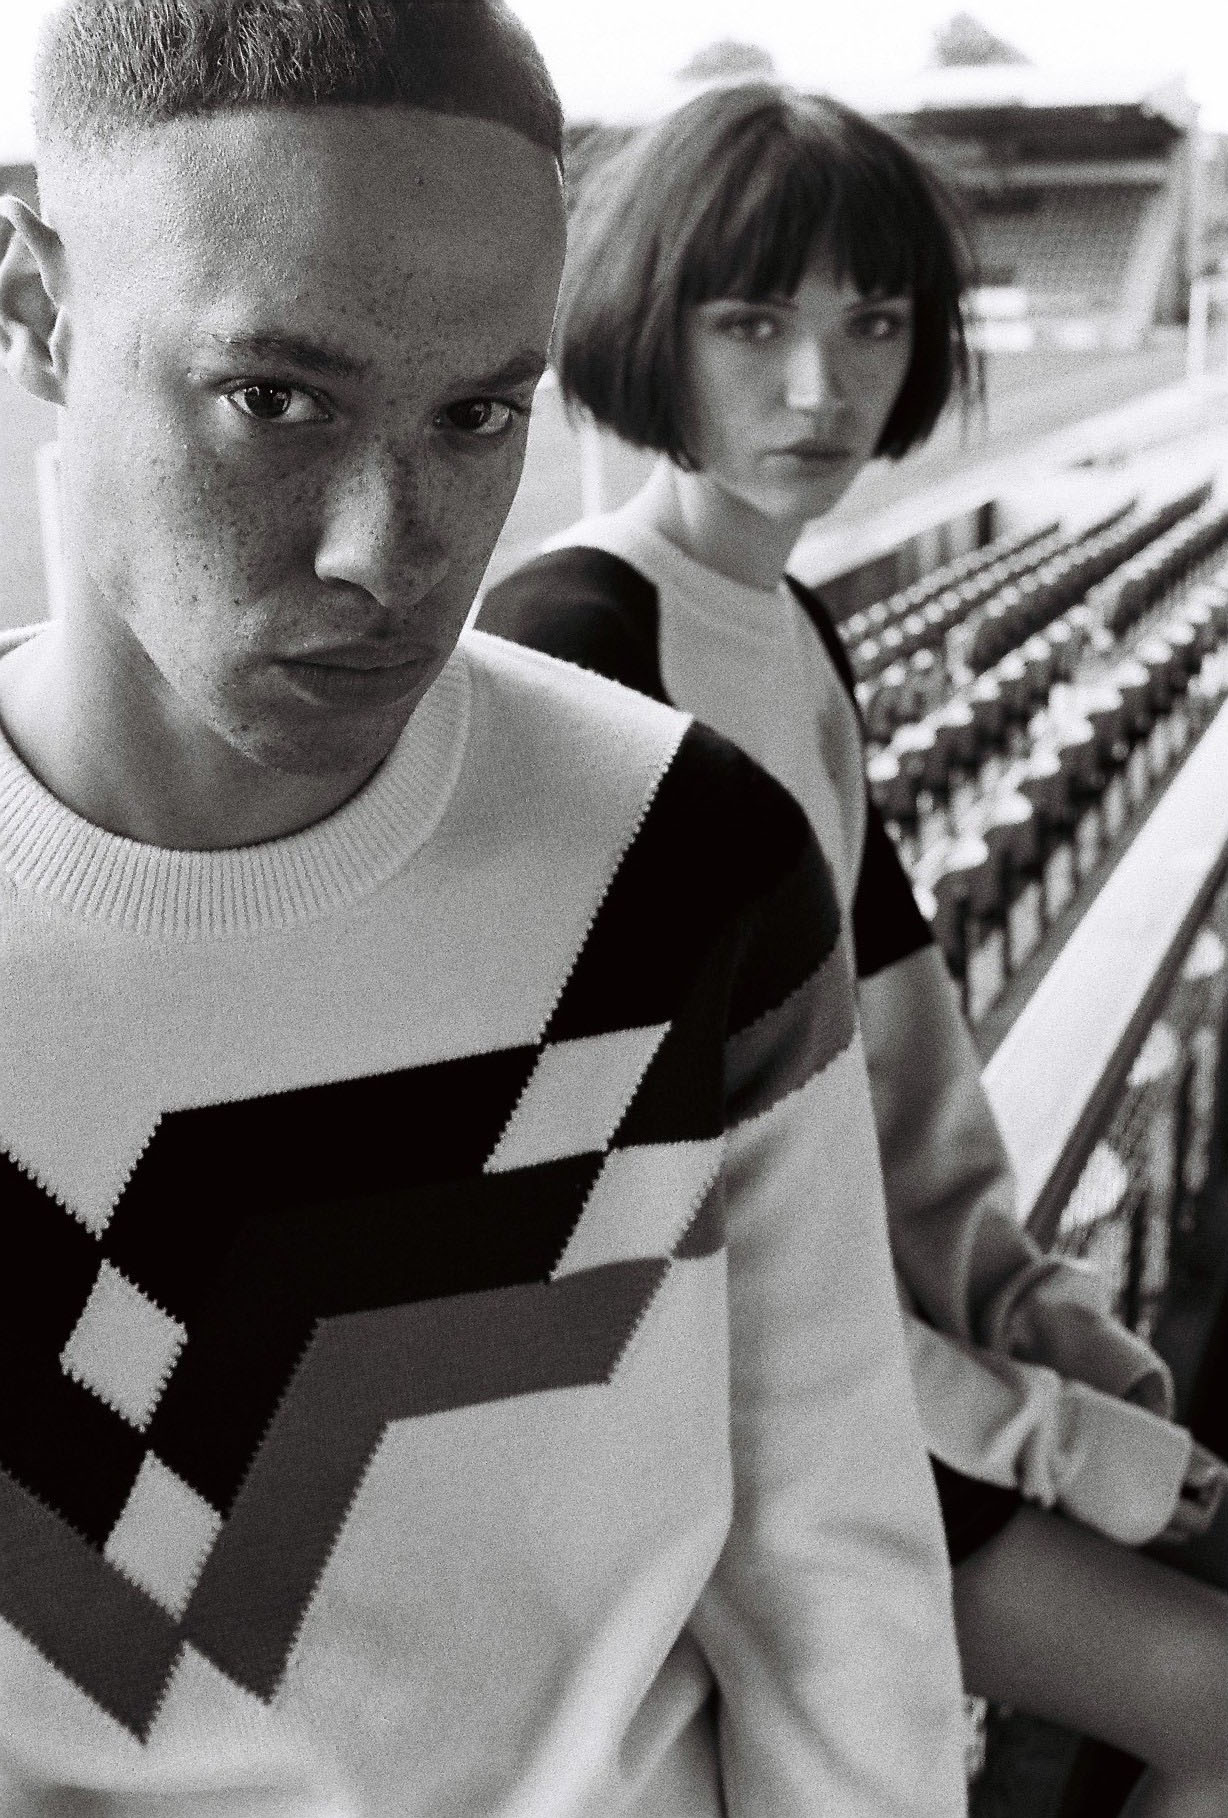 1 Lad, 1 girl in stadium by lifestyle photographer Tim Cole